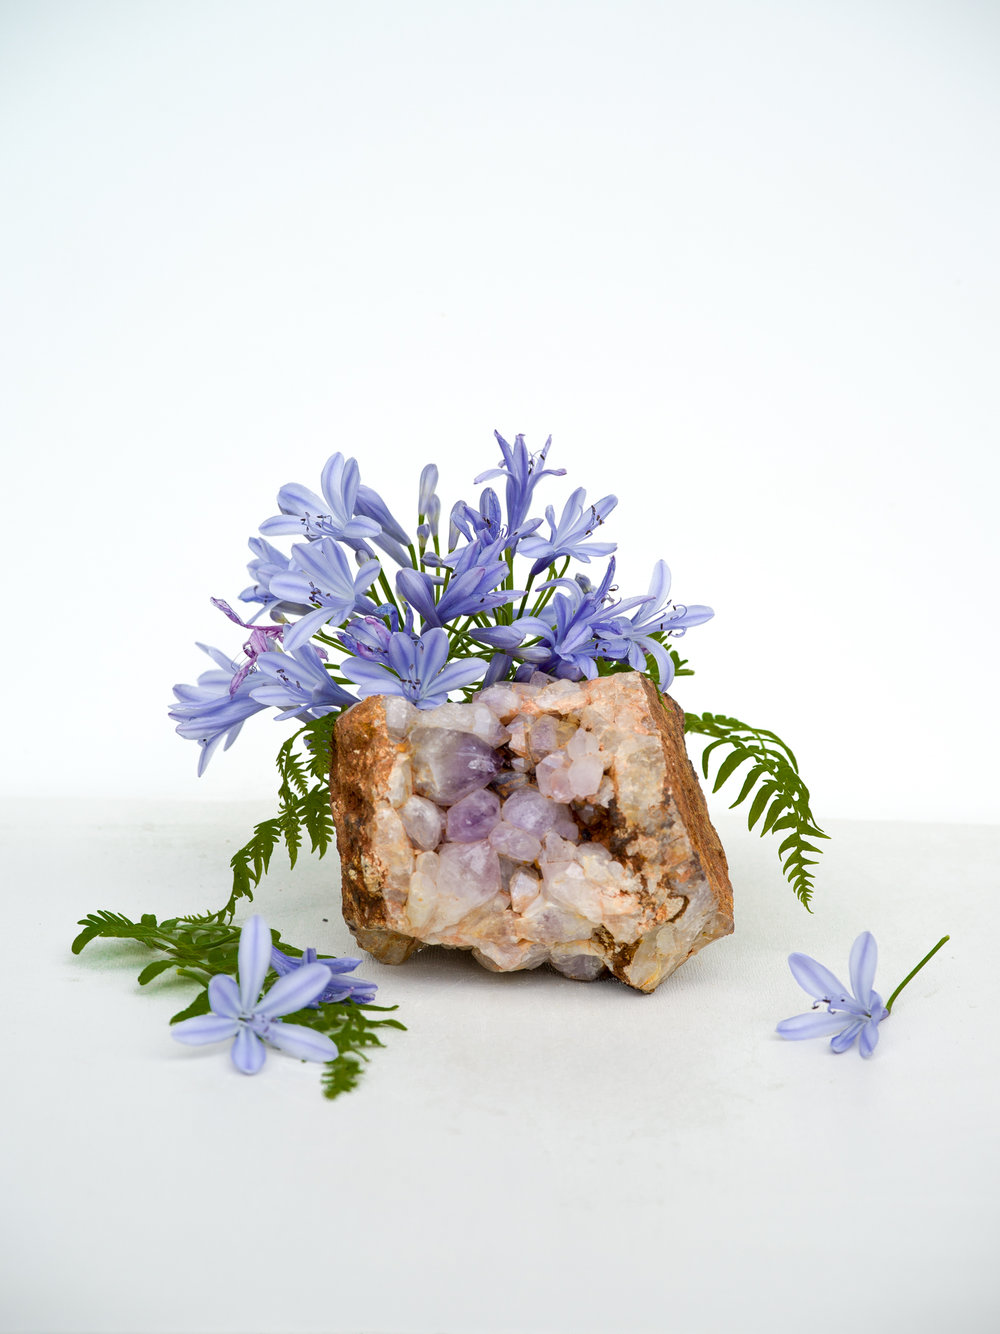 Agapanthus, Amethyst, and Fern,  2018  Signed on verso Archival pigment print back mounted to plexi with UV coating 30 x 24 inches  Edition of 3 + 1AP   40 x 30 inches Edition of 3 + 1AP